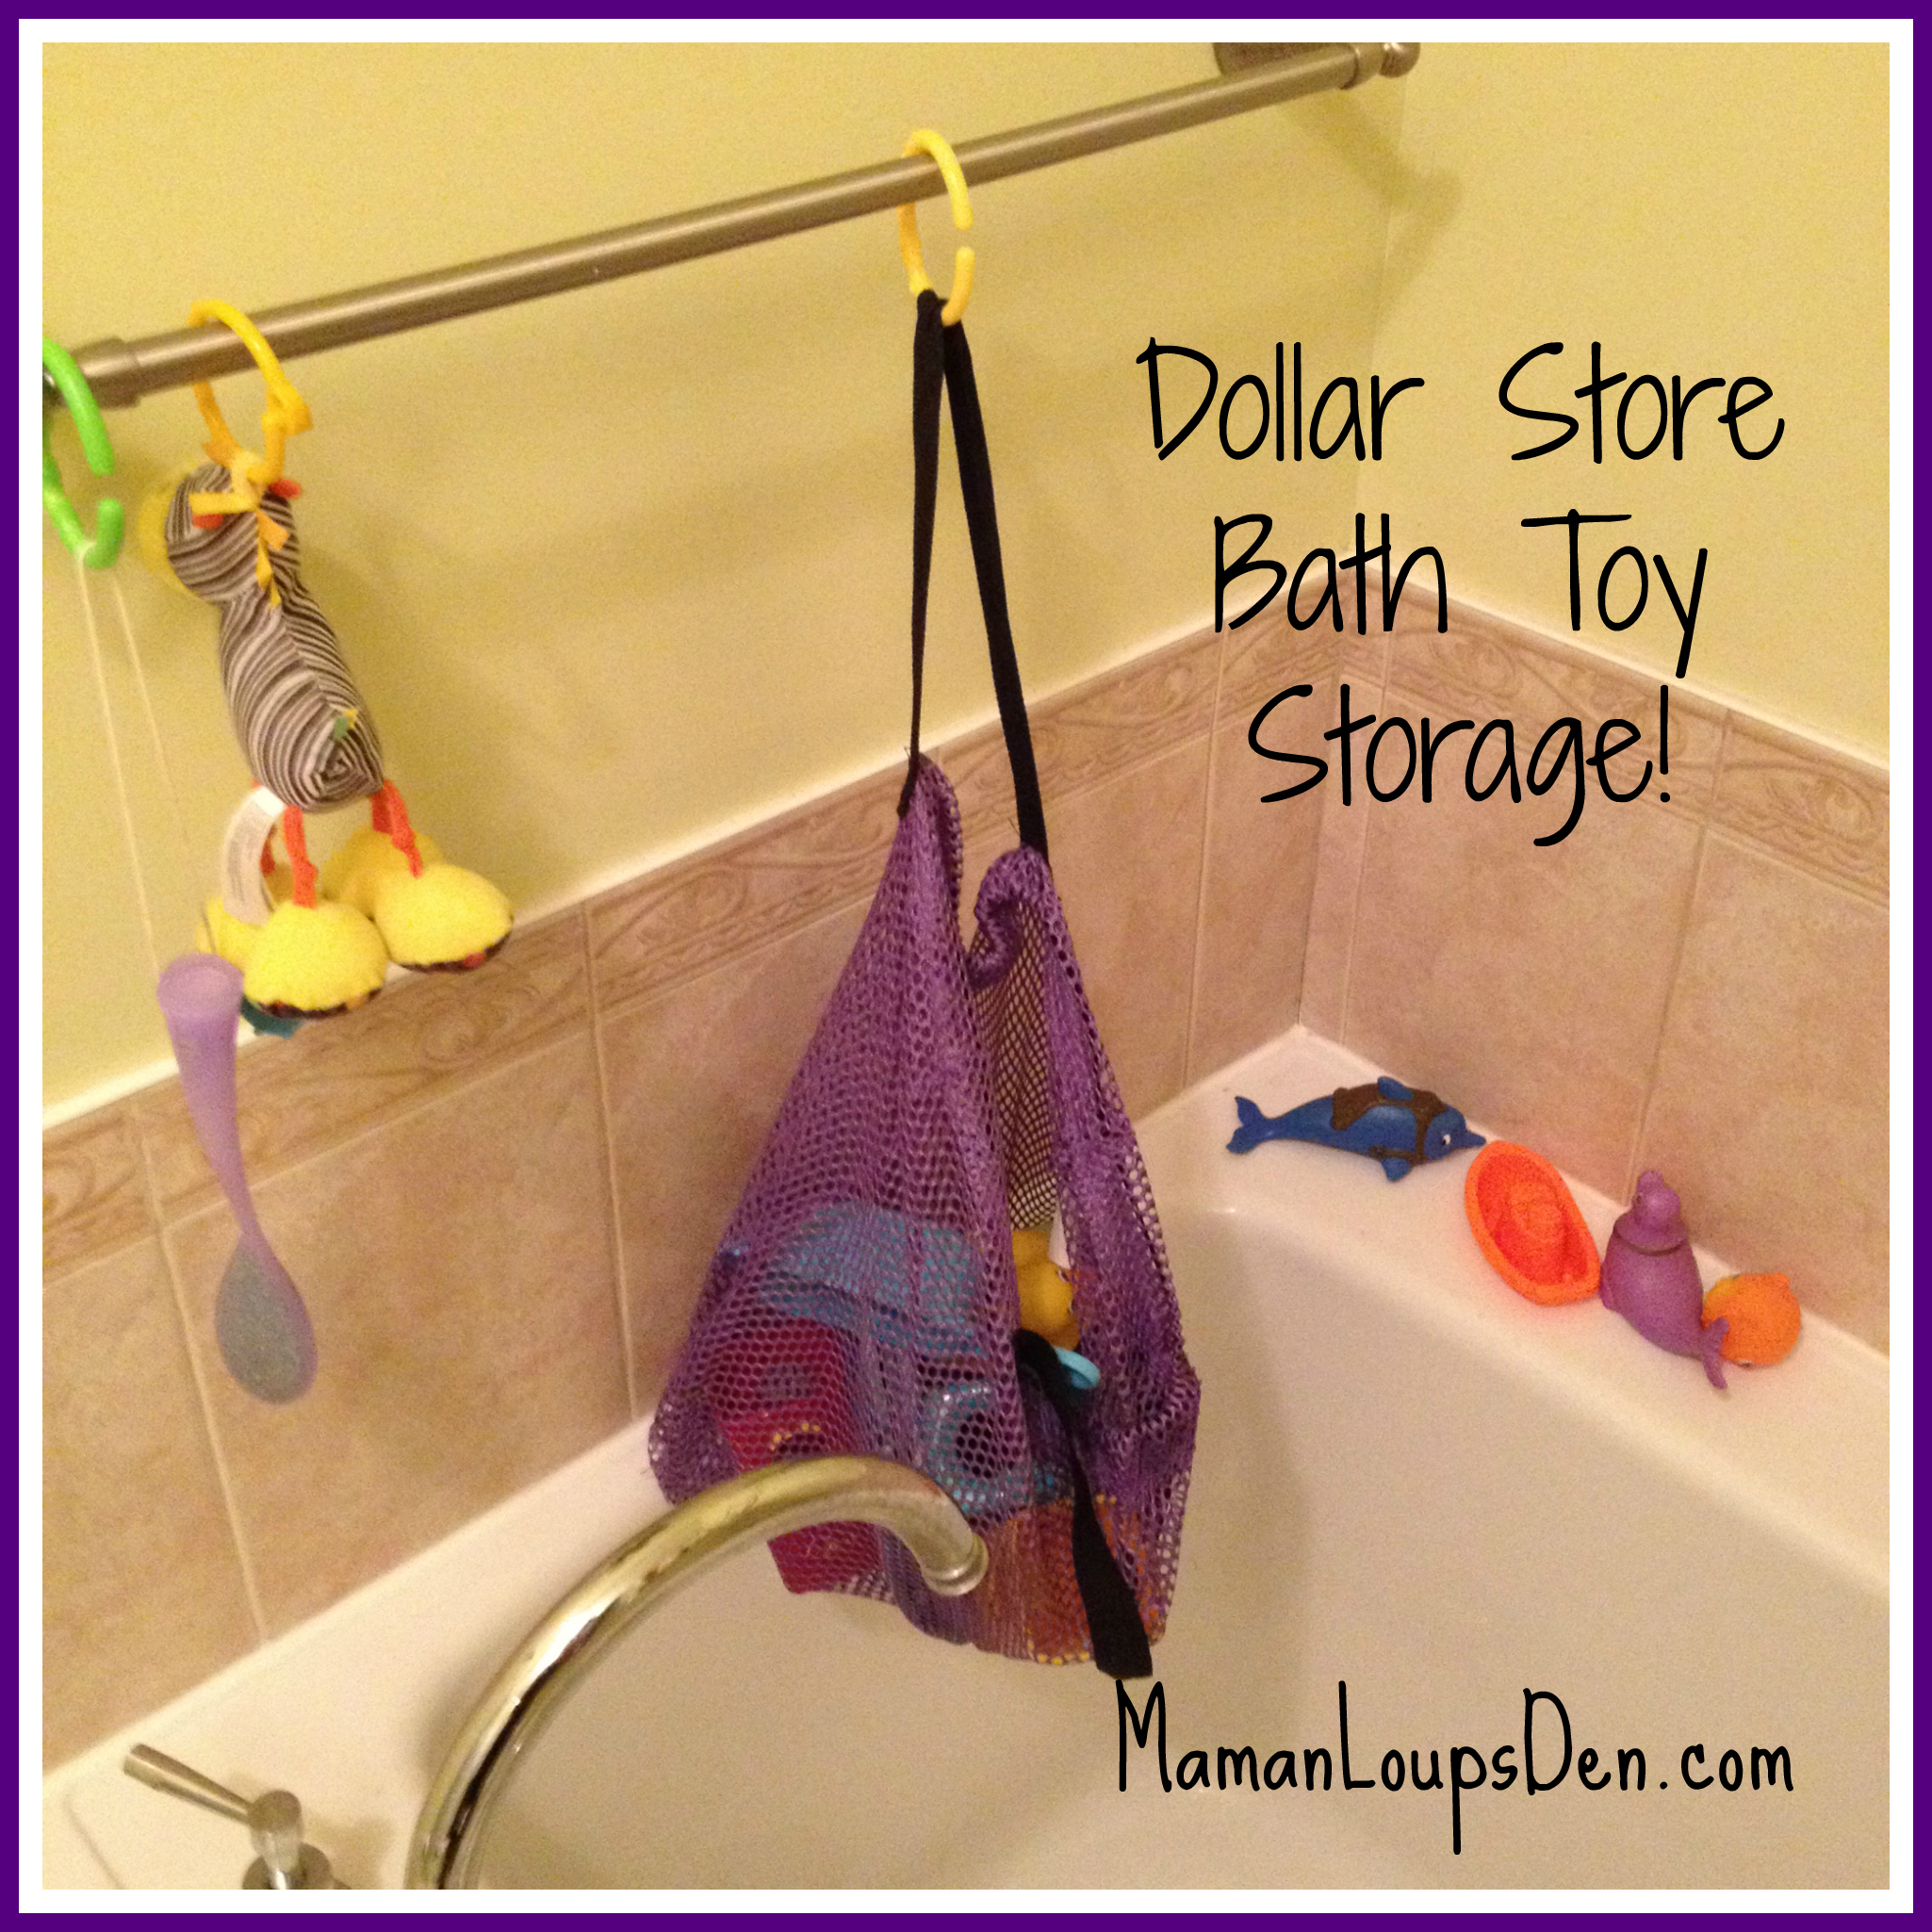 Dollarama Mesh Bag Makes Great Bath Toy Storage!